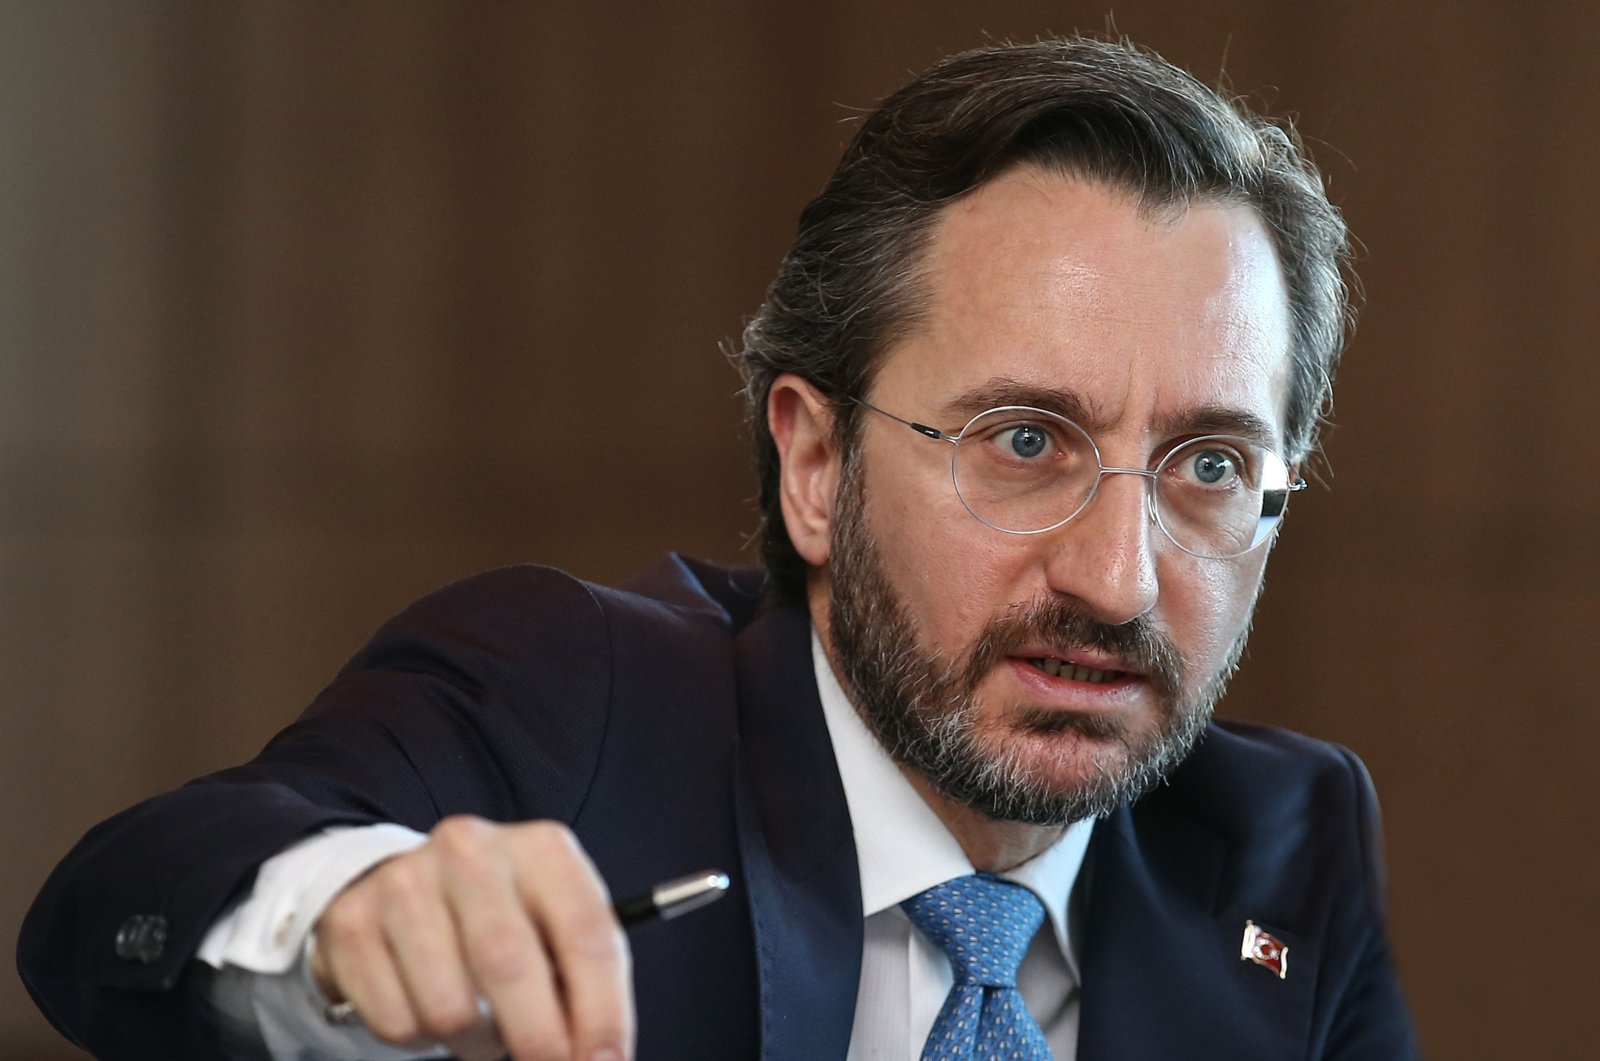 Communications Director Fahrettin Altun speaks during a press conference at the Communications Directorate in Ankara on Dec. 12, 2020 (AA Photo)